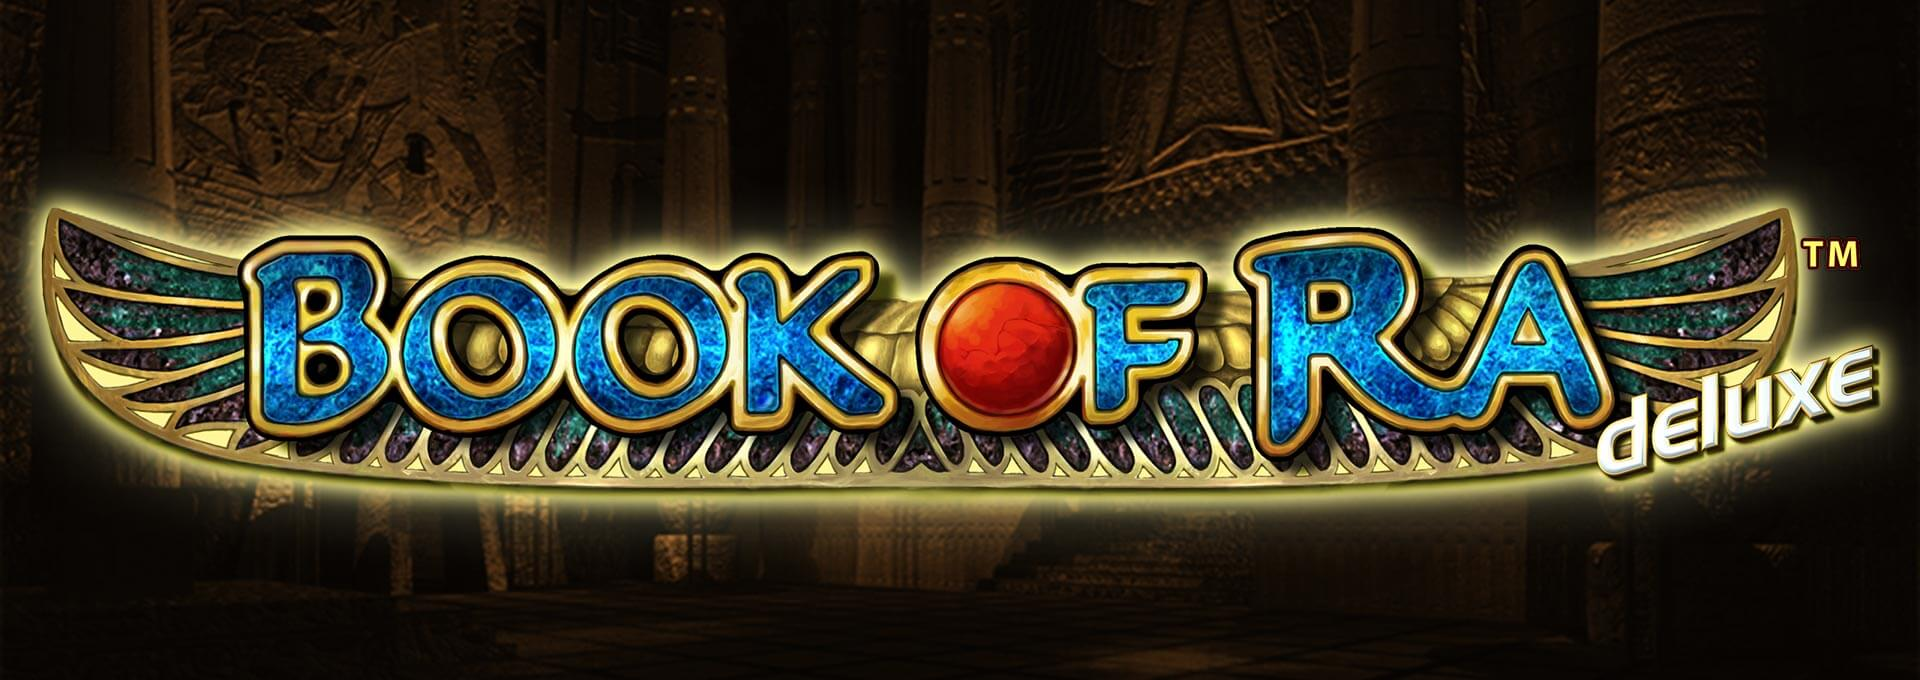 casino online italiani book of raa